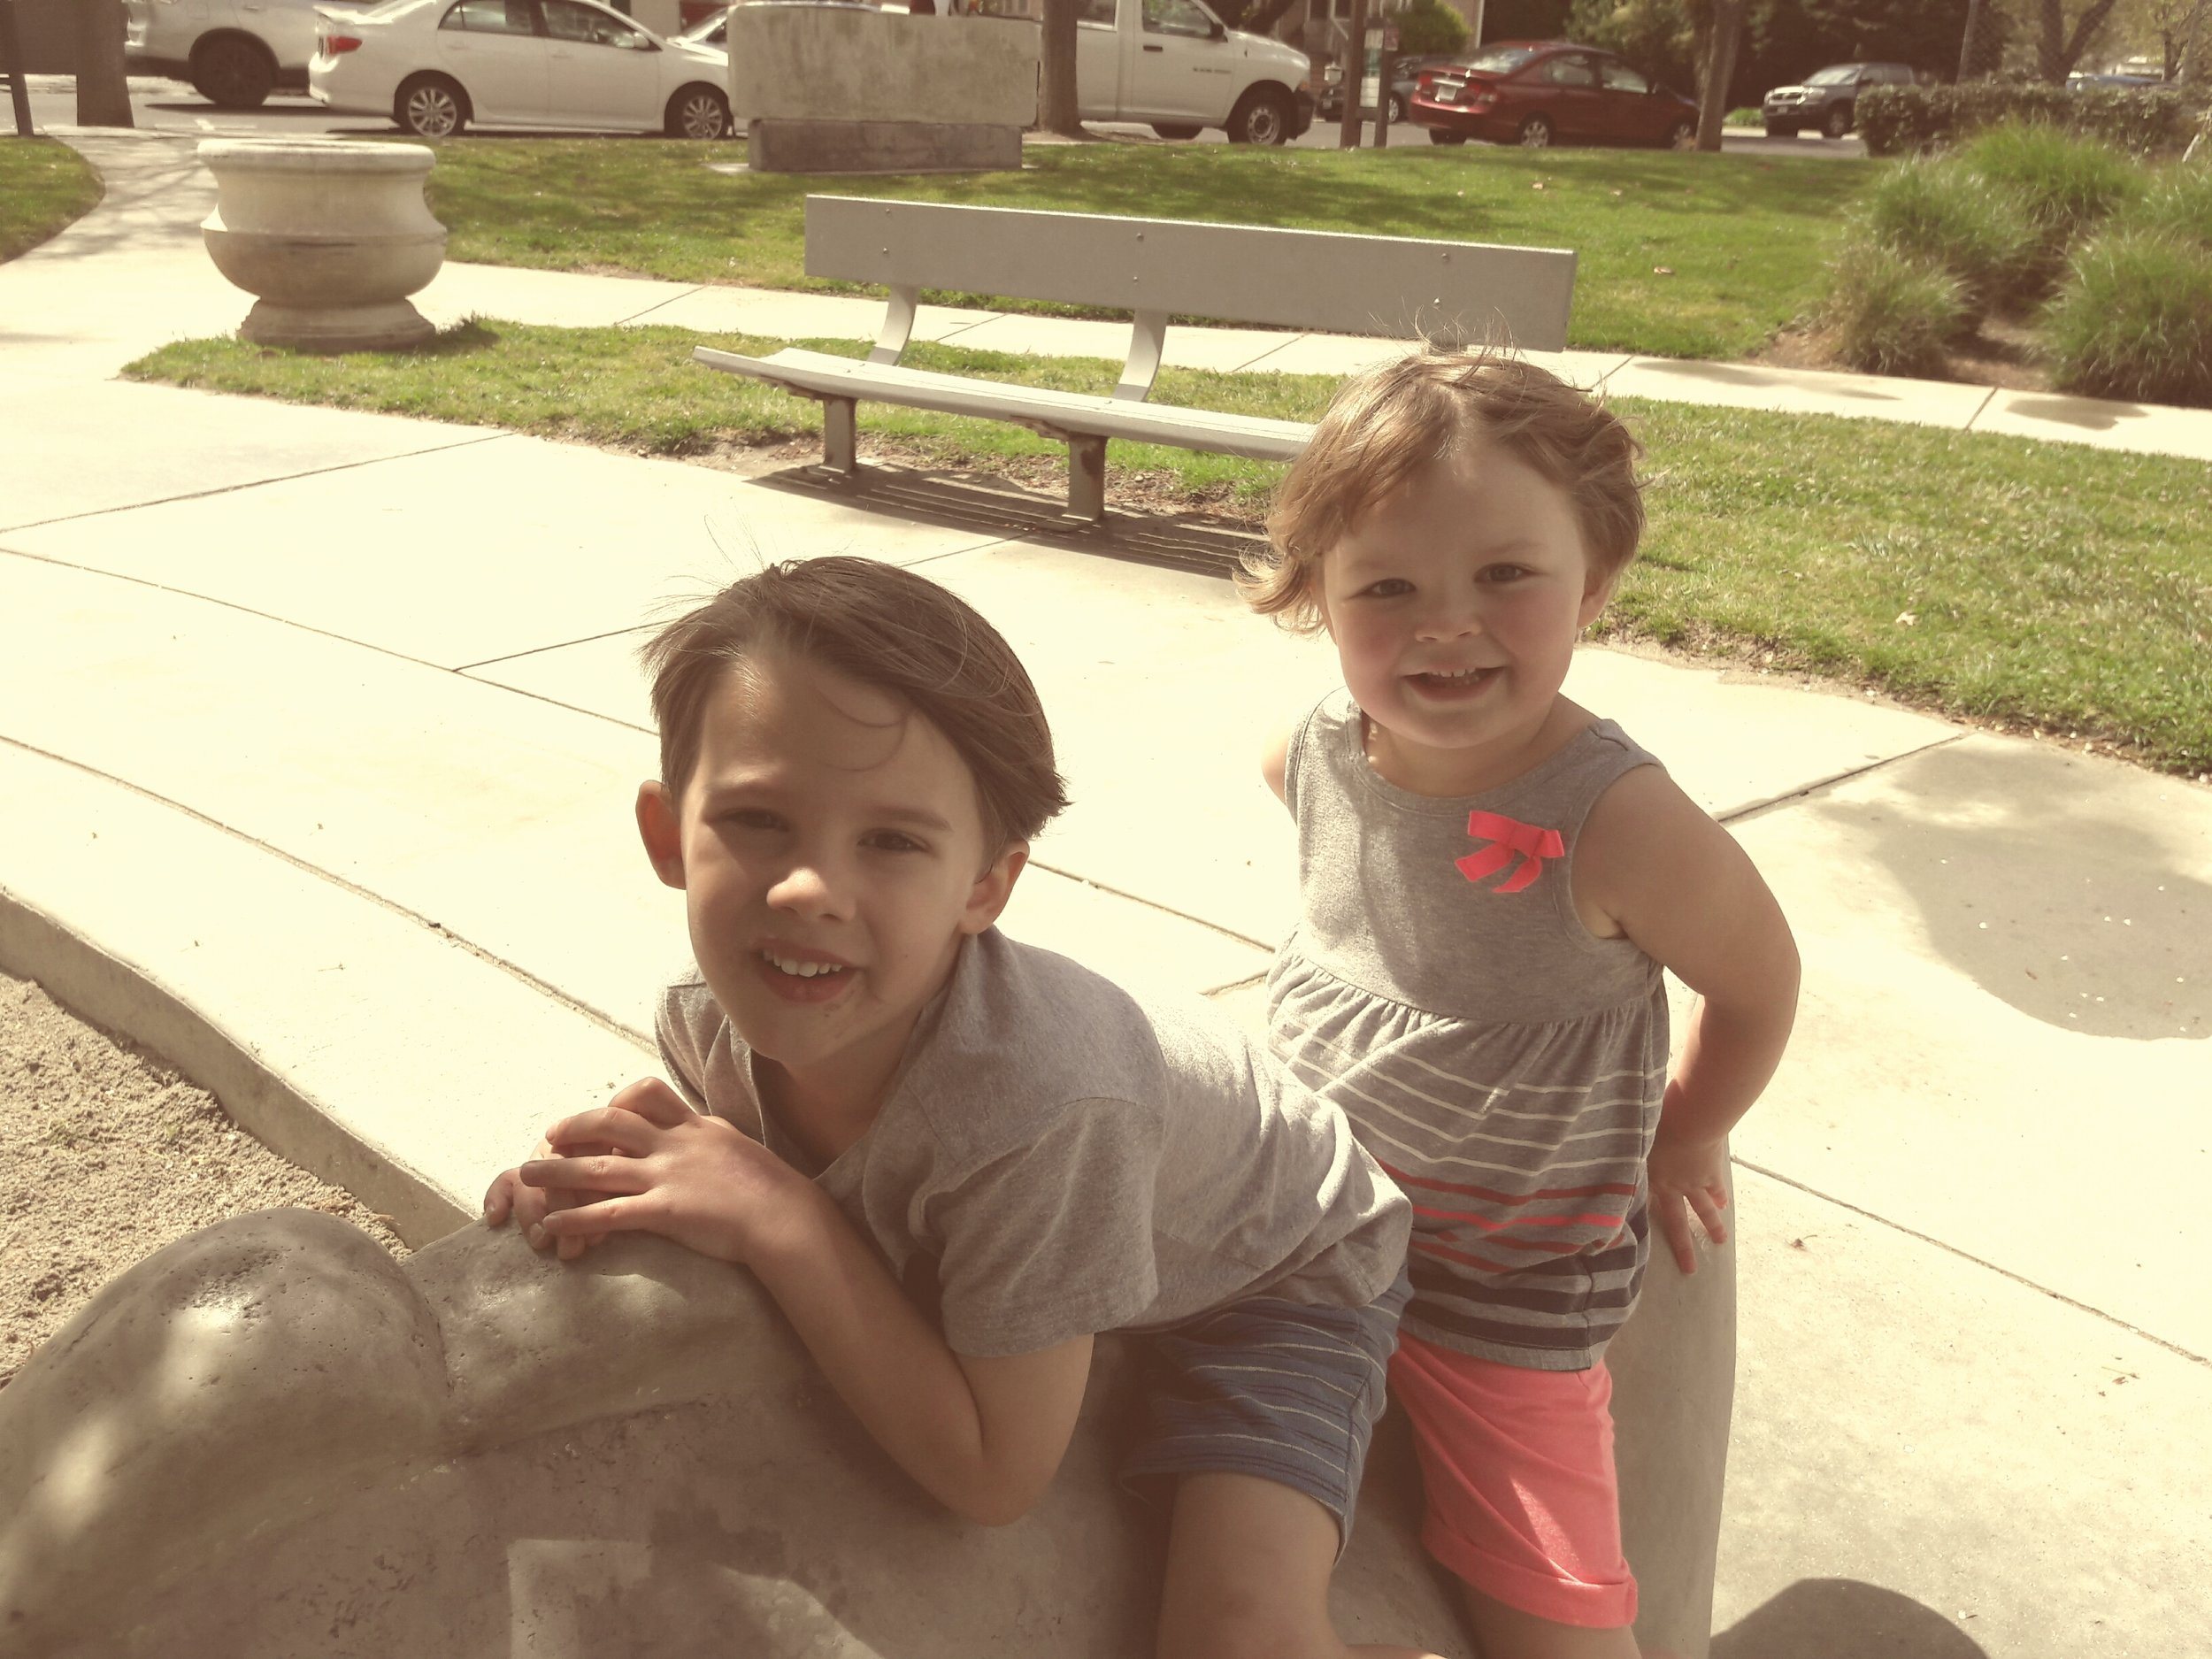 """Little girl ask, """"Can I play with you?"""" """"Yes!"""" What joy bringing words! Off they went to have a great time together."""